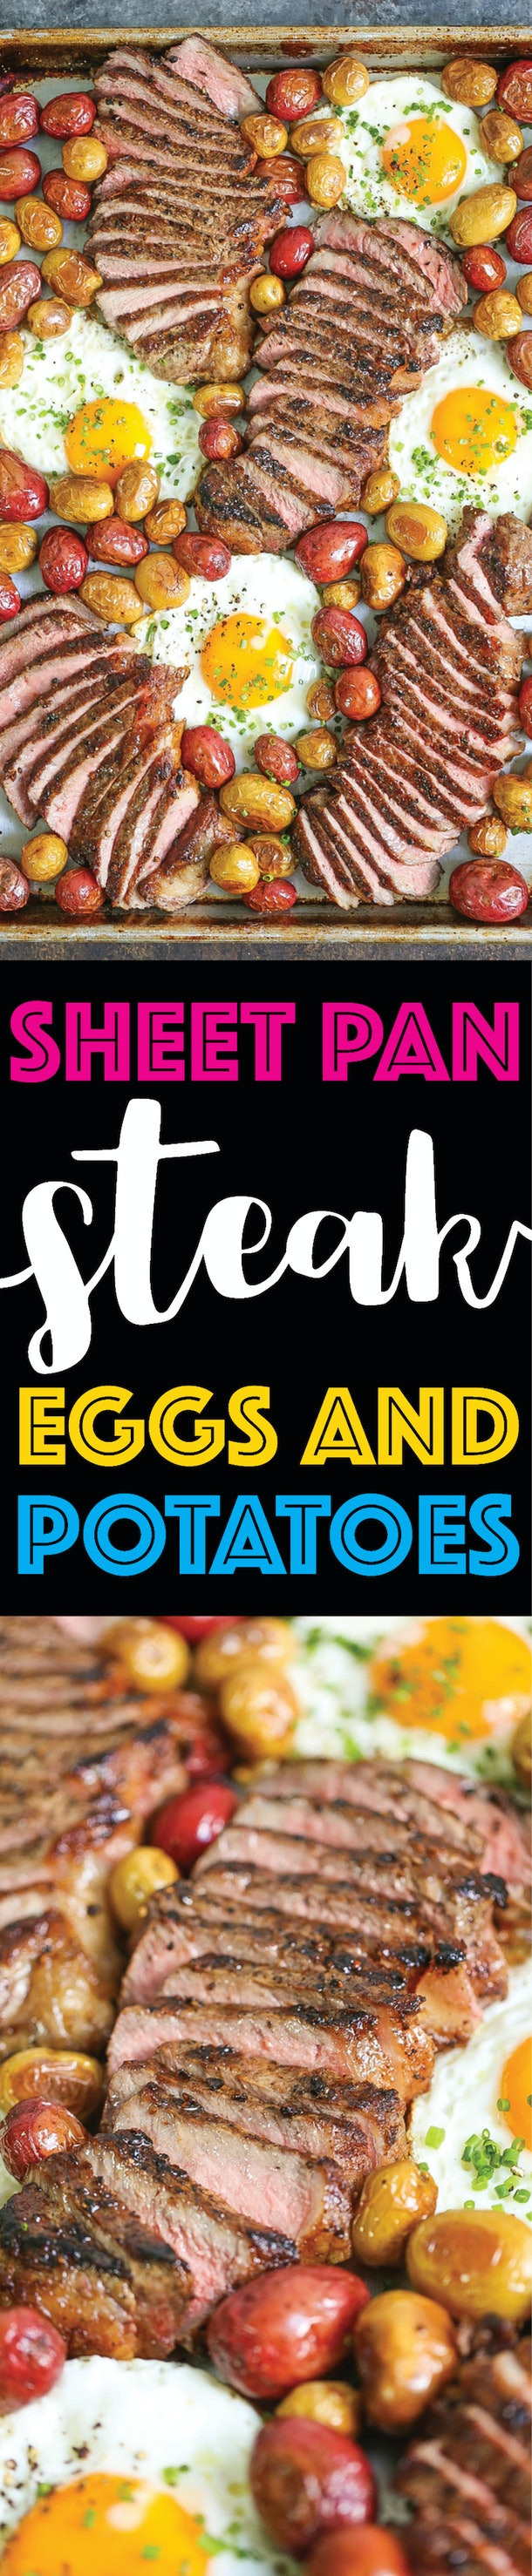 sheet pan recipes with steak, sheet pan steak eggs and potatoes